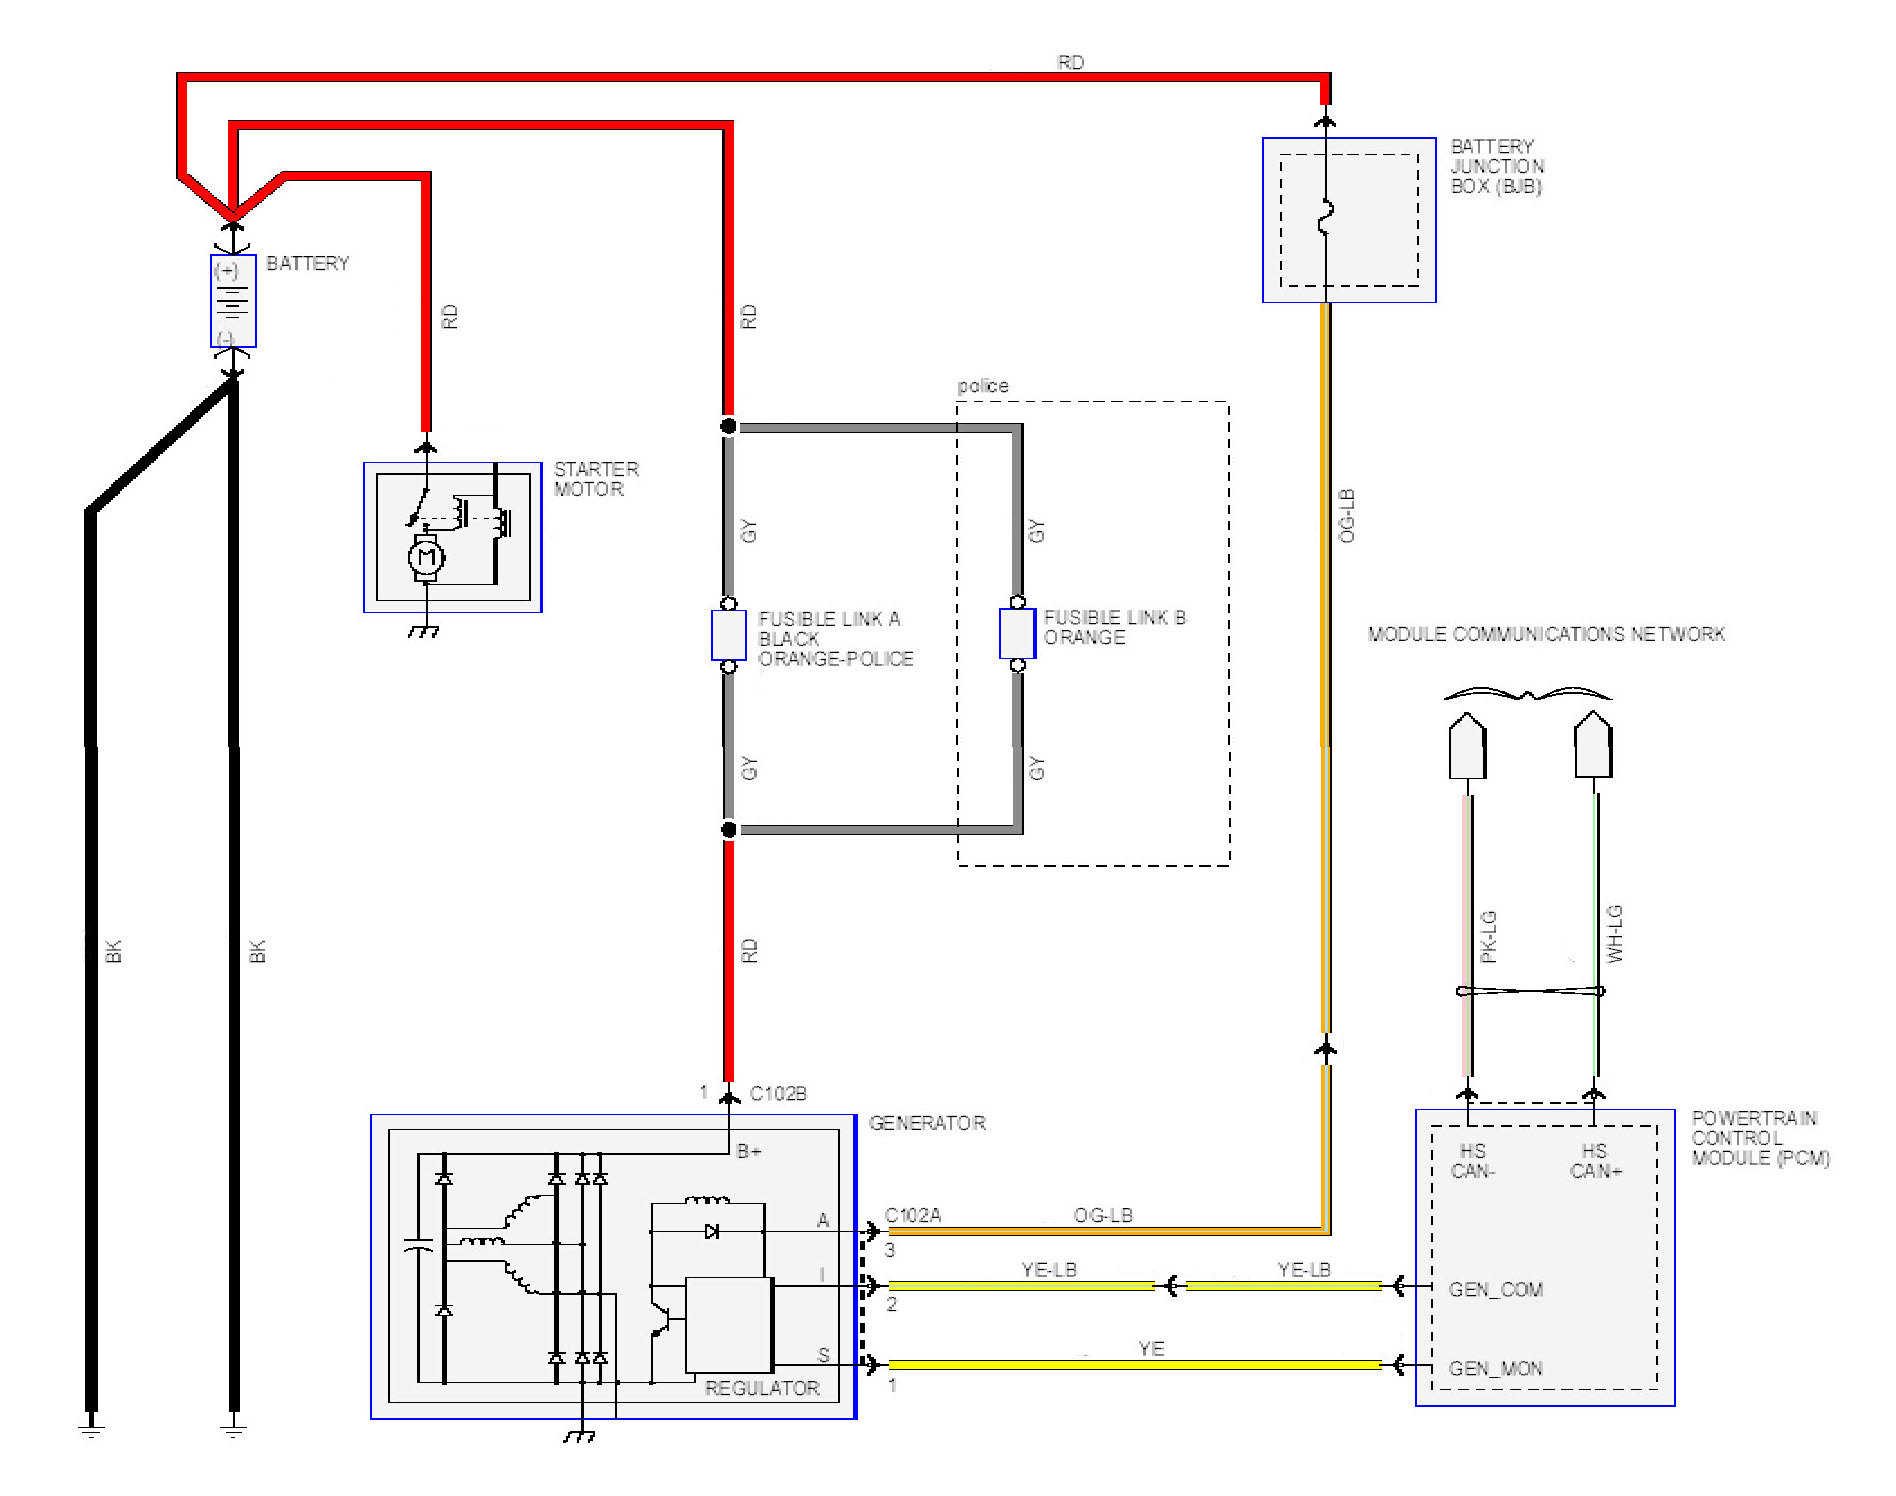 Wiring Diagram For 91 Crown Vic - Wiring Diagram Option on rocker switch diagram, switch lights, switch circuit diagram, switch outlets diagram, 3-way switch diagram, switch starter diagram, switch socket diagram, wall switch diagram, electrical outlets diagram, network switch diagram, relay switch diagram, switch battery diagram,